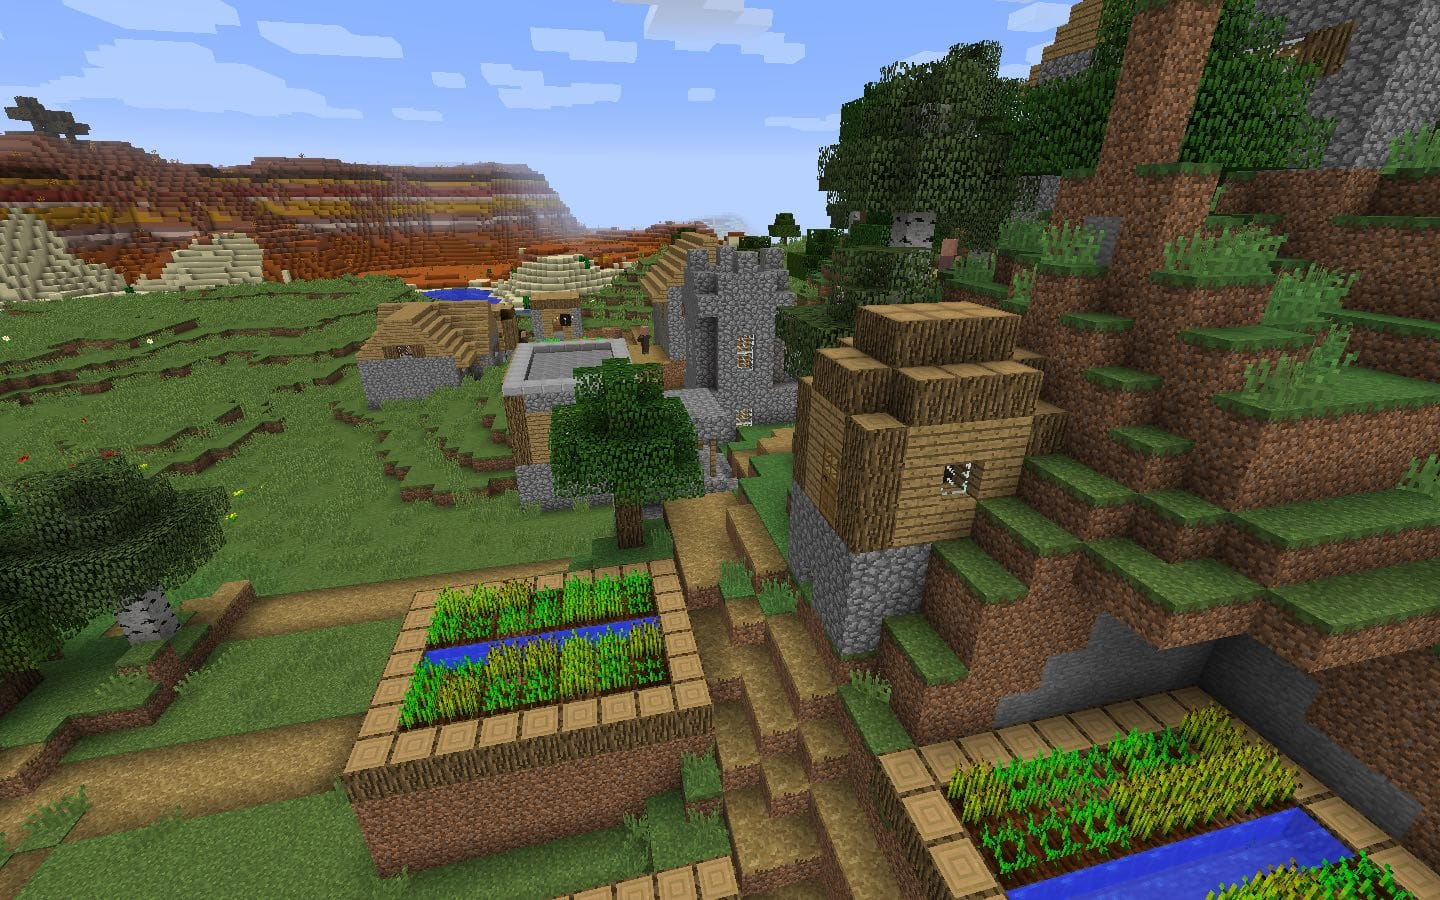 Blacksmith Village Minecraft Seed